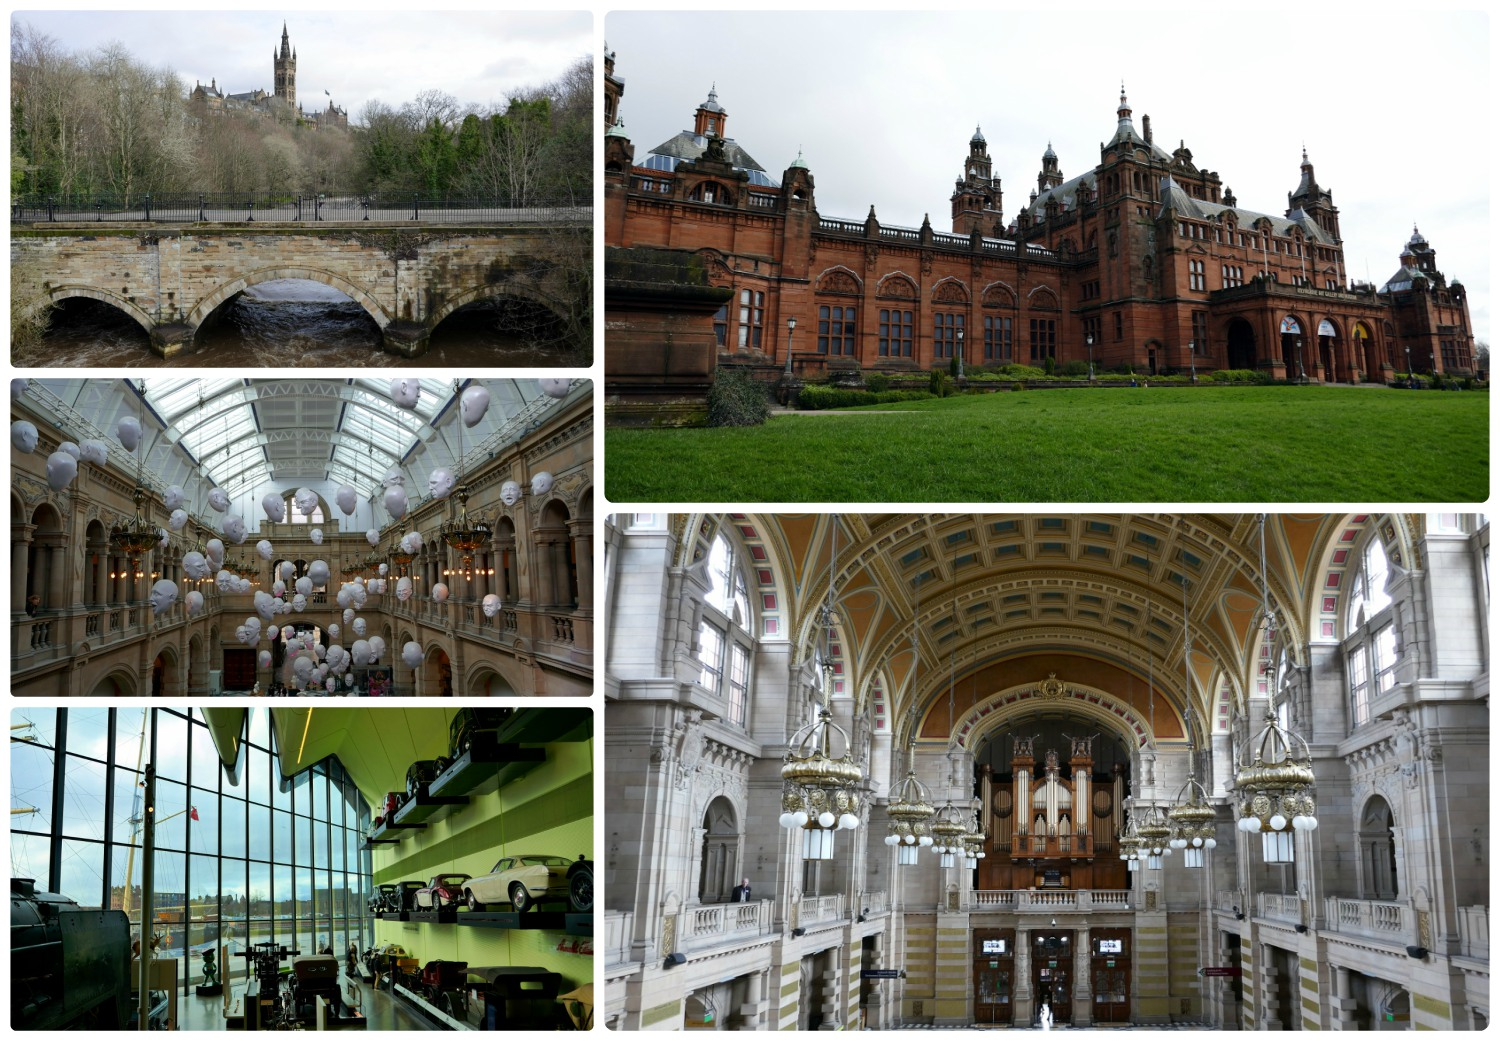 Glasgow, Scotland, United Kingdom. Clockwise (from the top left): View of Glasgow University, exterior of Kelvingrove Art Gallery and Museum, exhibit at Kelvingrove Art Gallery and Museum, interior of Kelvingrove Art Gallery and Museum, inside the River Transport Museum.